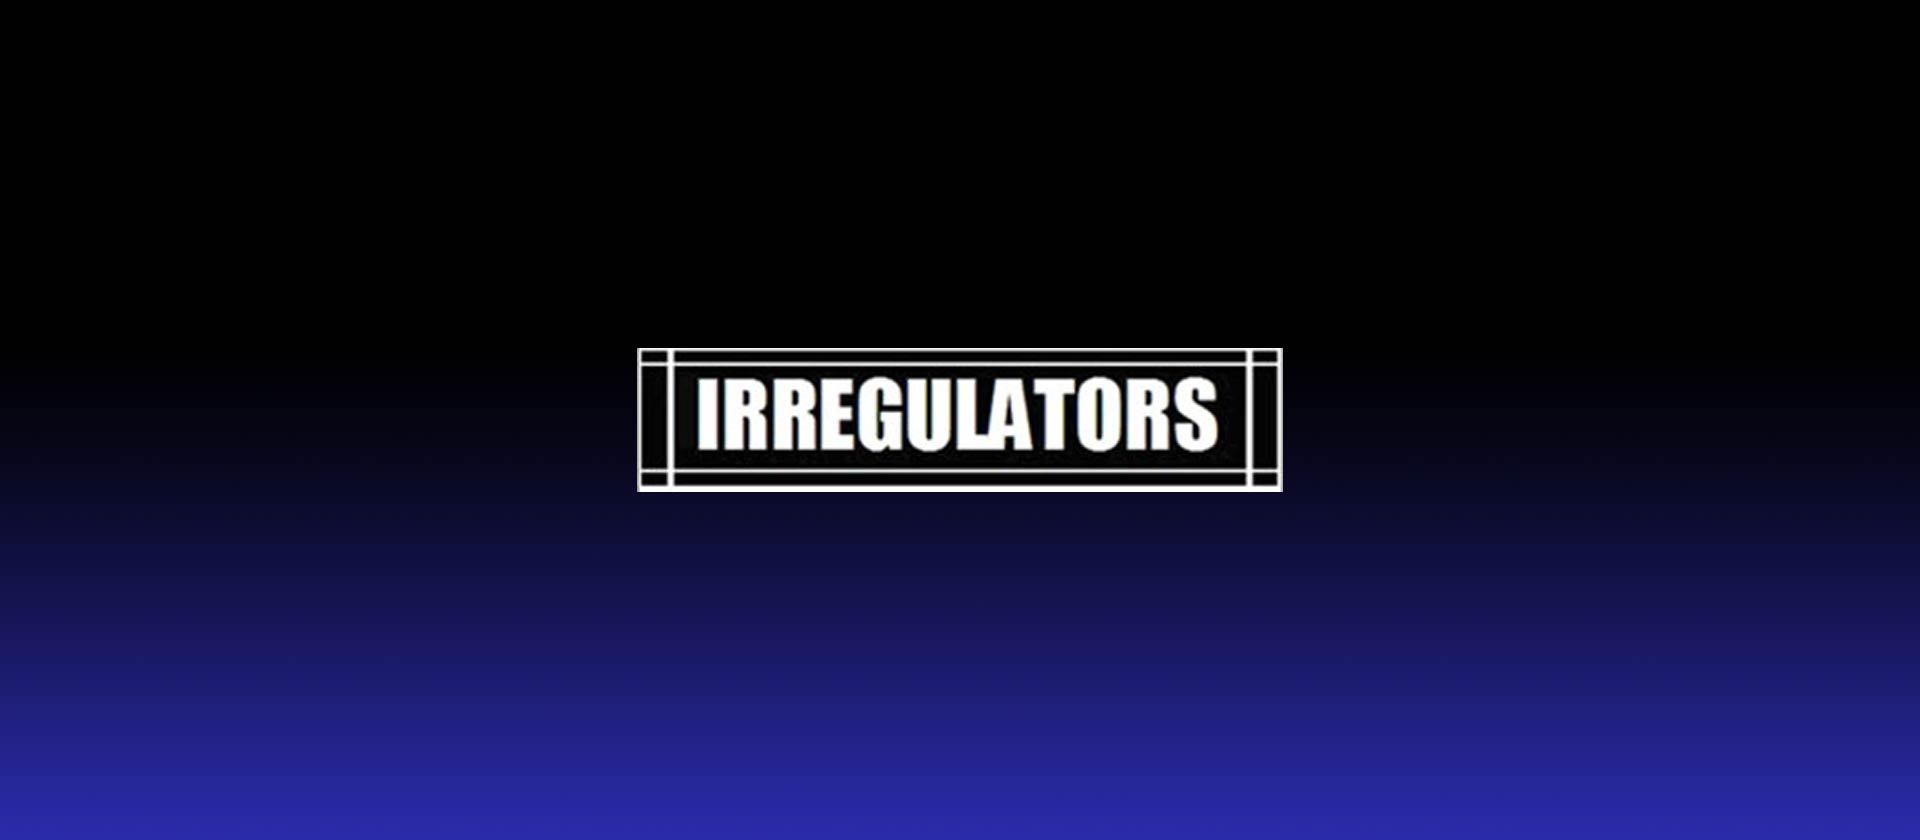 IRREGULATORS